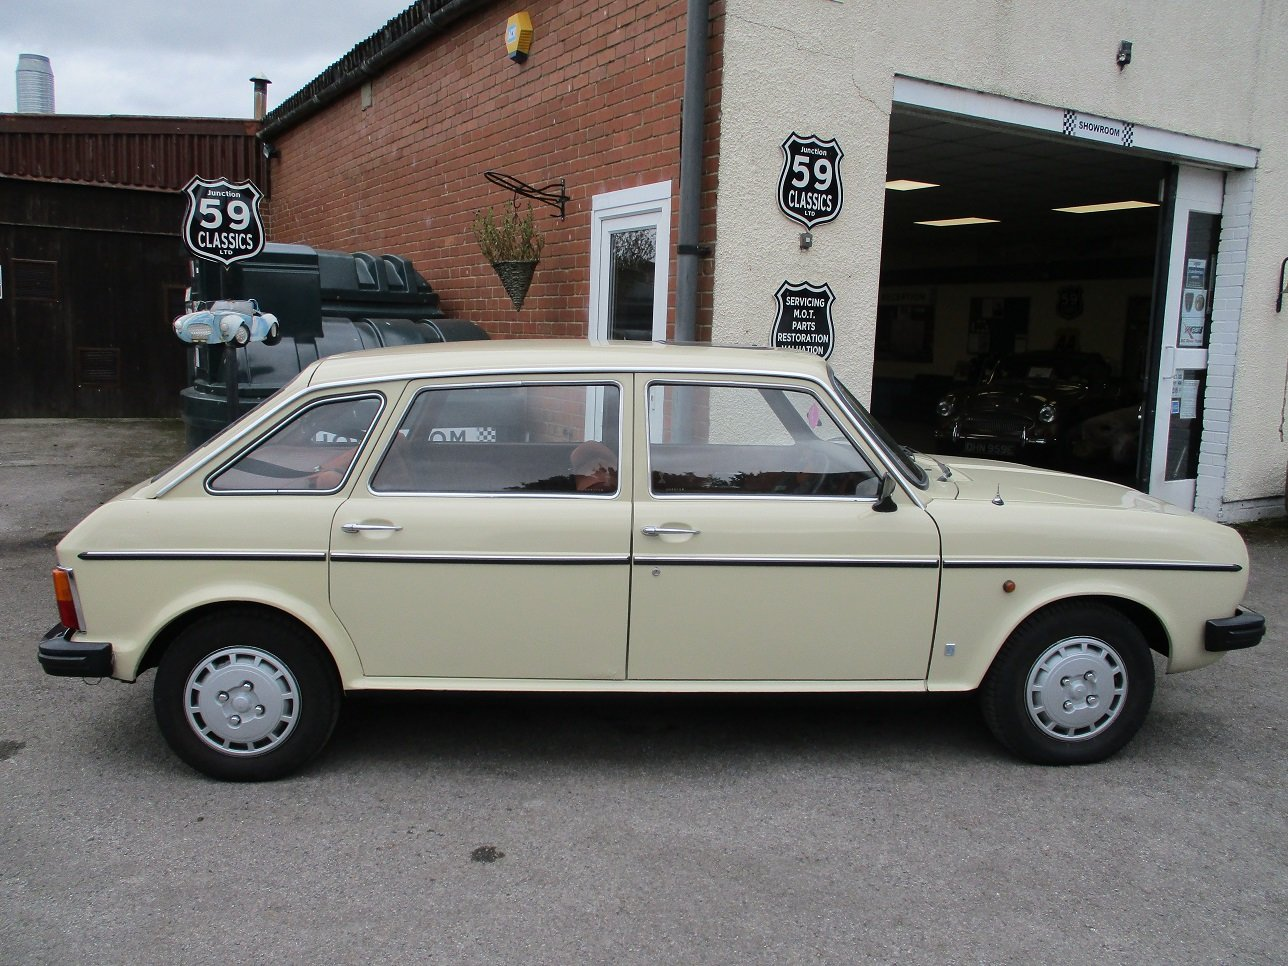 1980 Austin Maxi - Good Condition For Sale (picture 3 of 4)